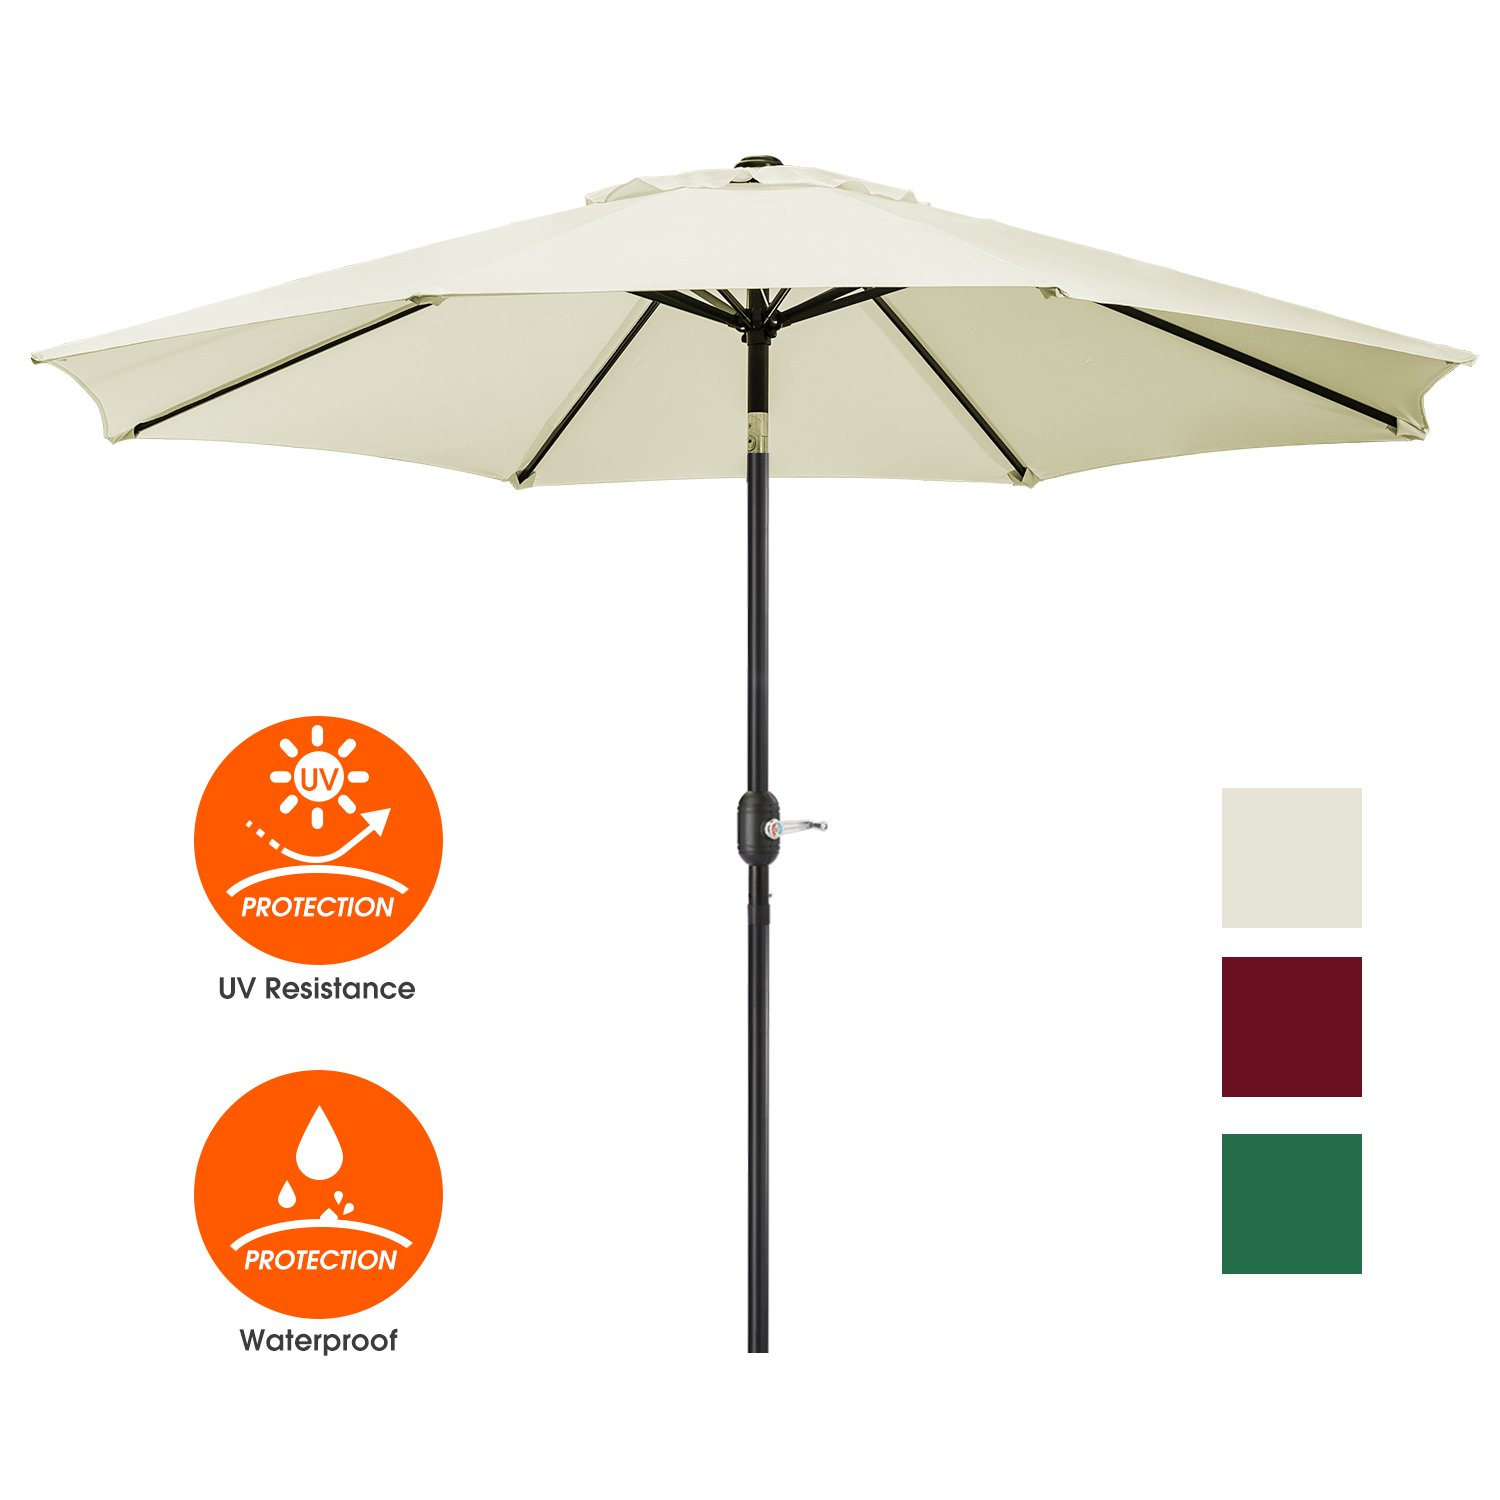 The Best Patio Umbrellas For Your Garden Or Backyard: Reviews & Buying Guide 9